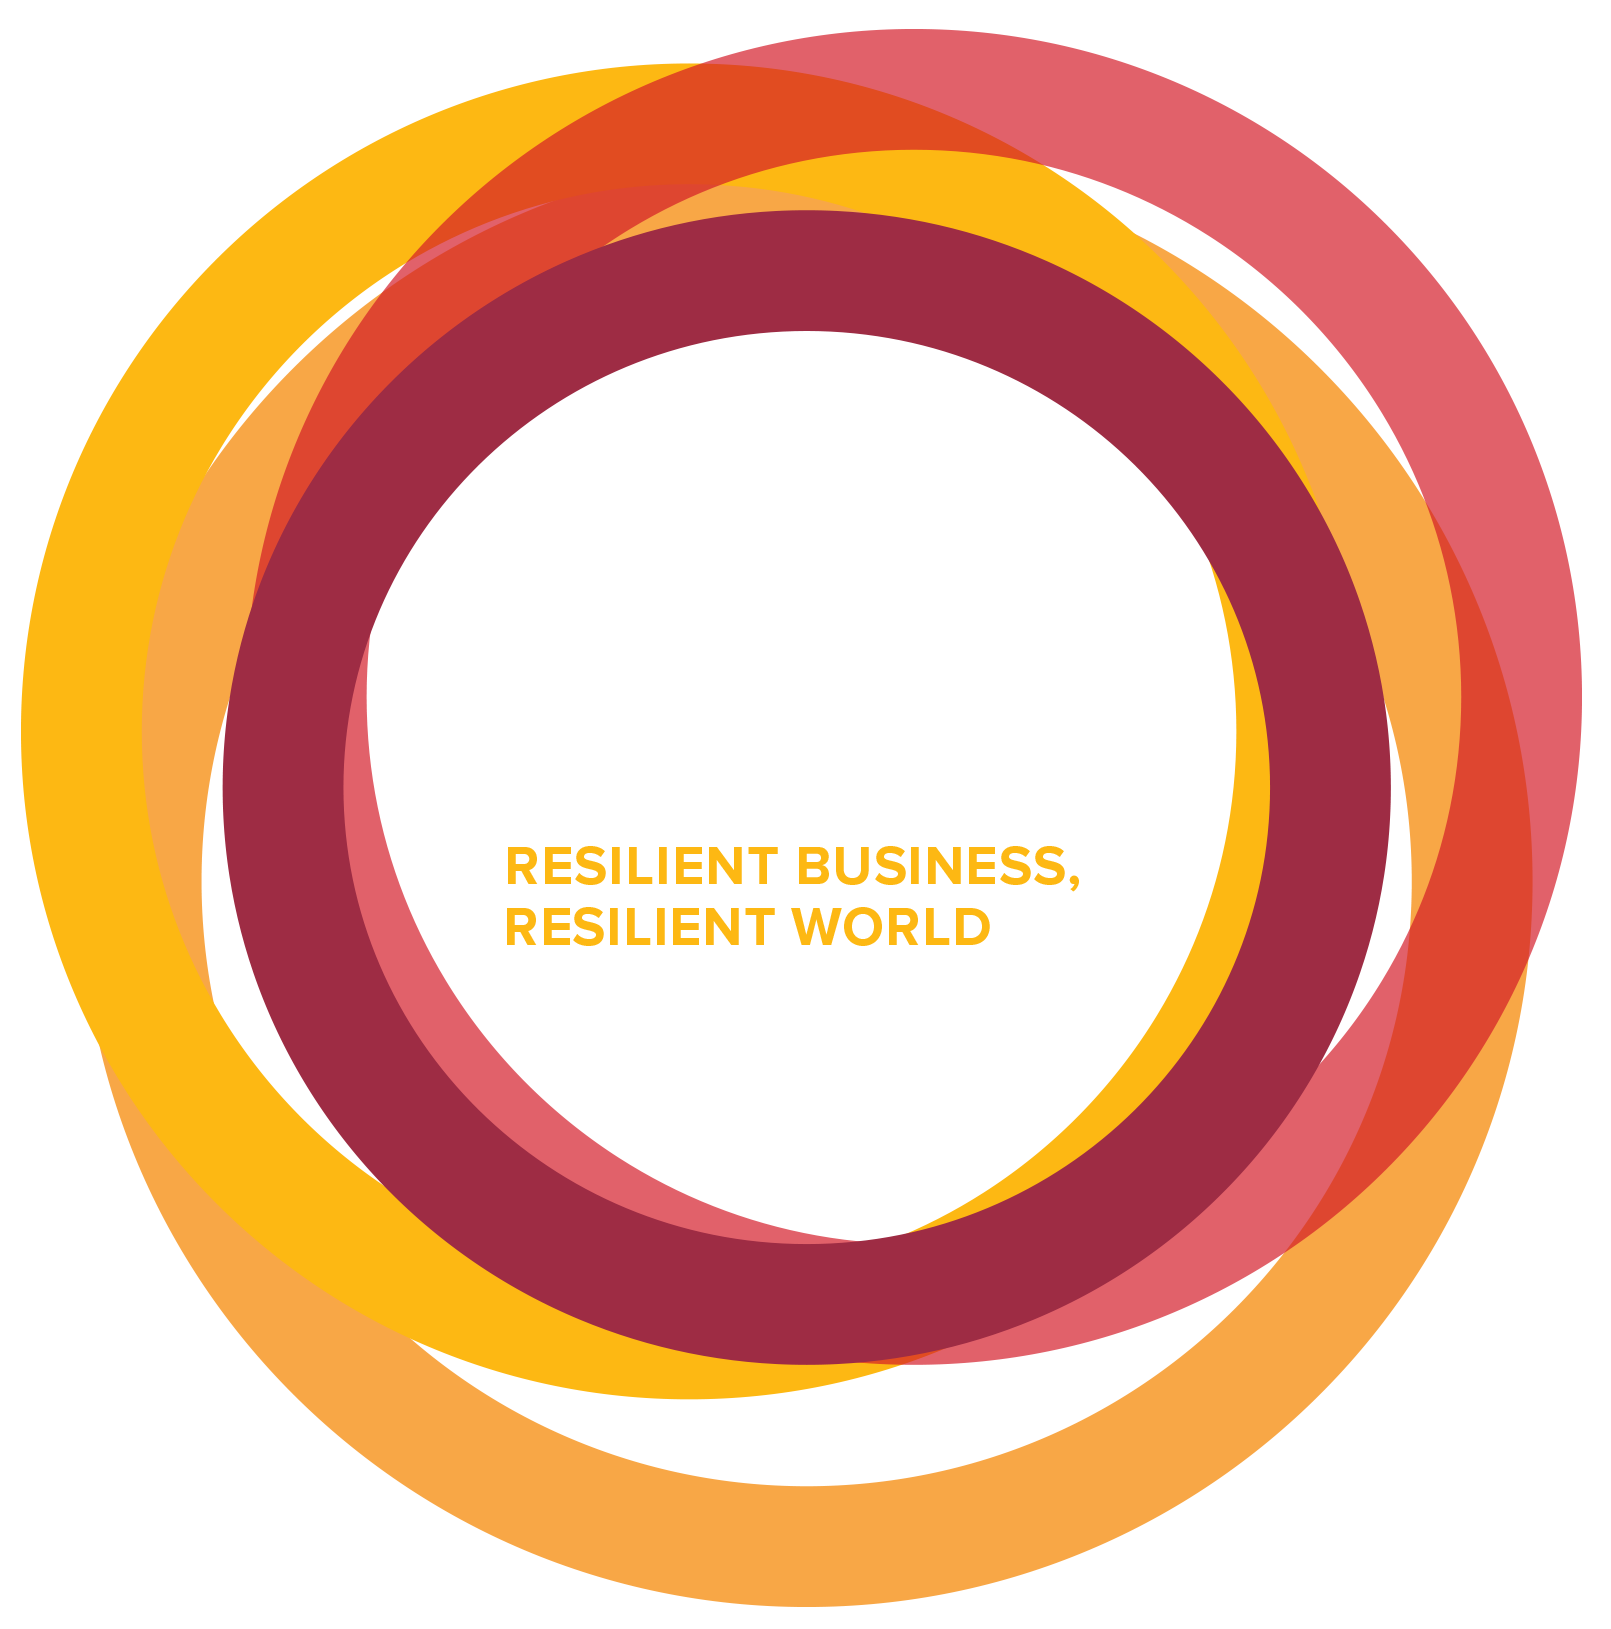 BSR Conference 2015: Resilient Business, Resilient World; November 3-5, 2015, San Francisco